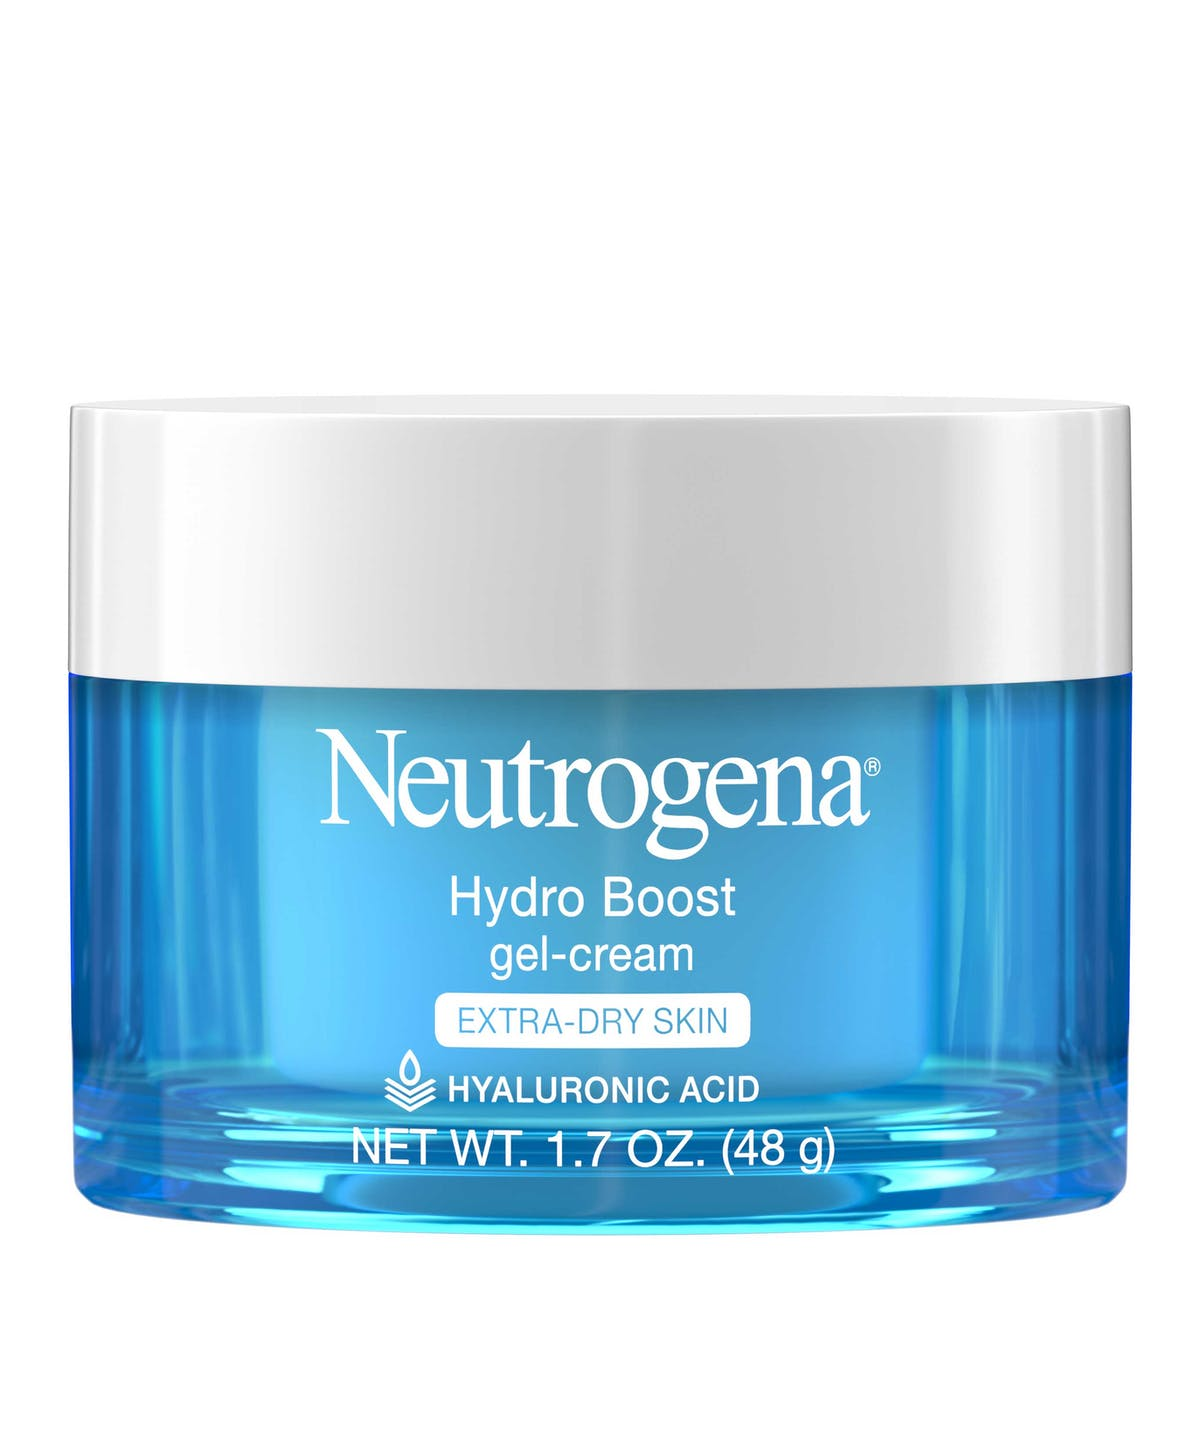 Hydro Boost Face Gel Cream with Hyaluronic Acid | NEUTROGENA®